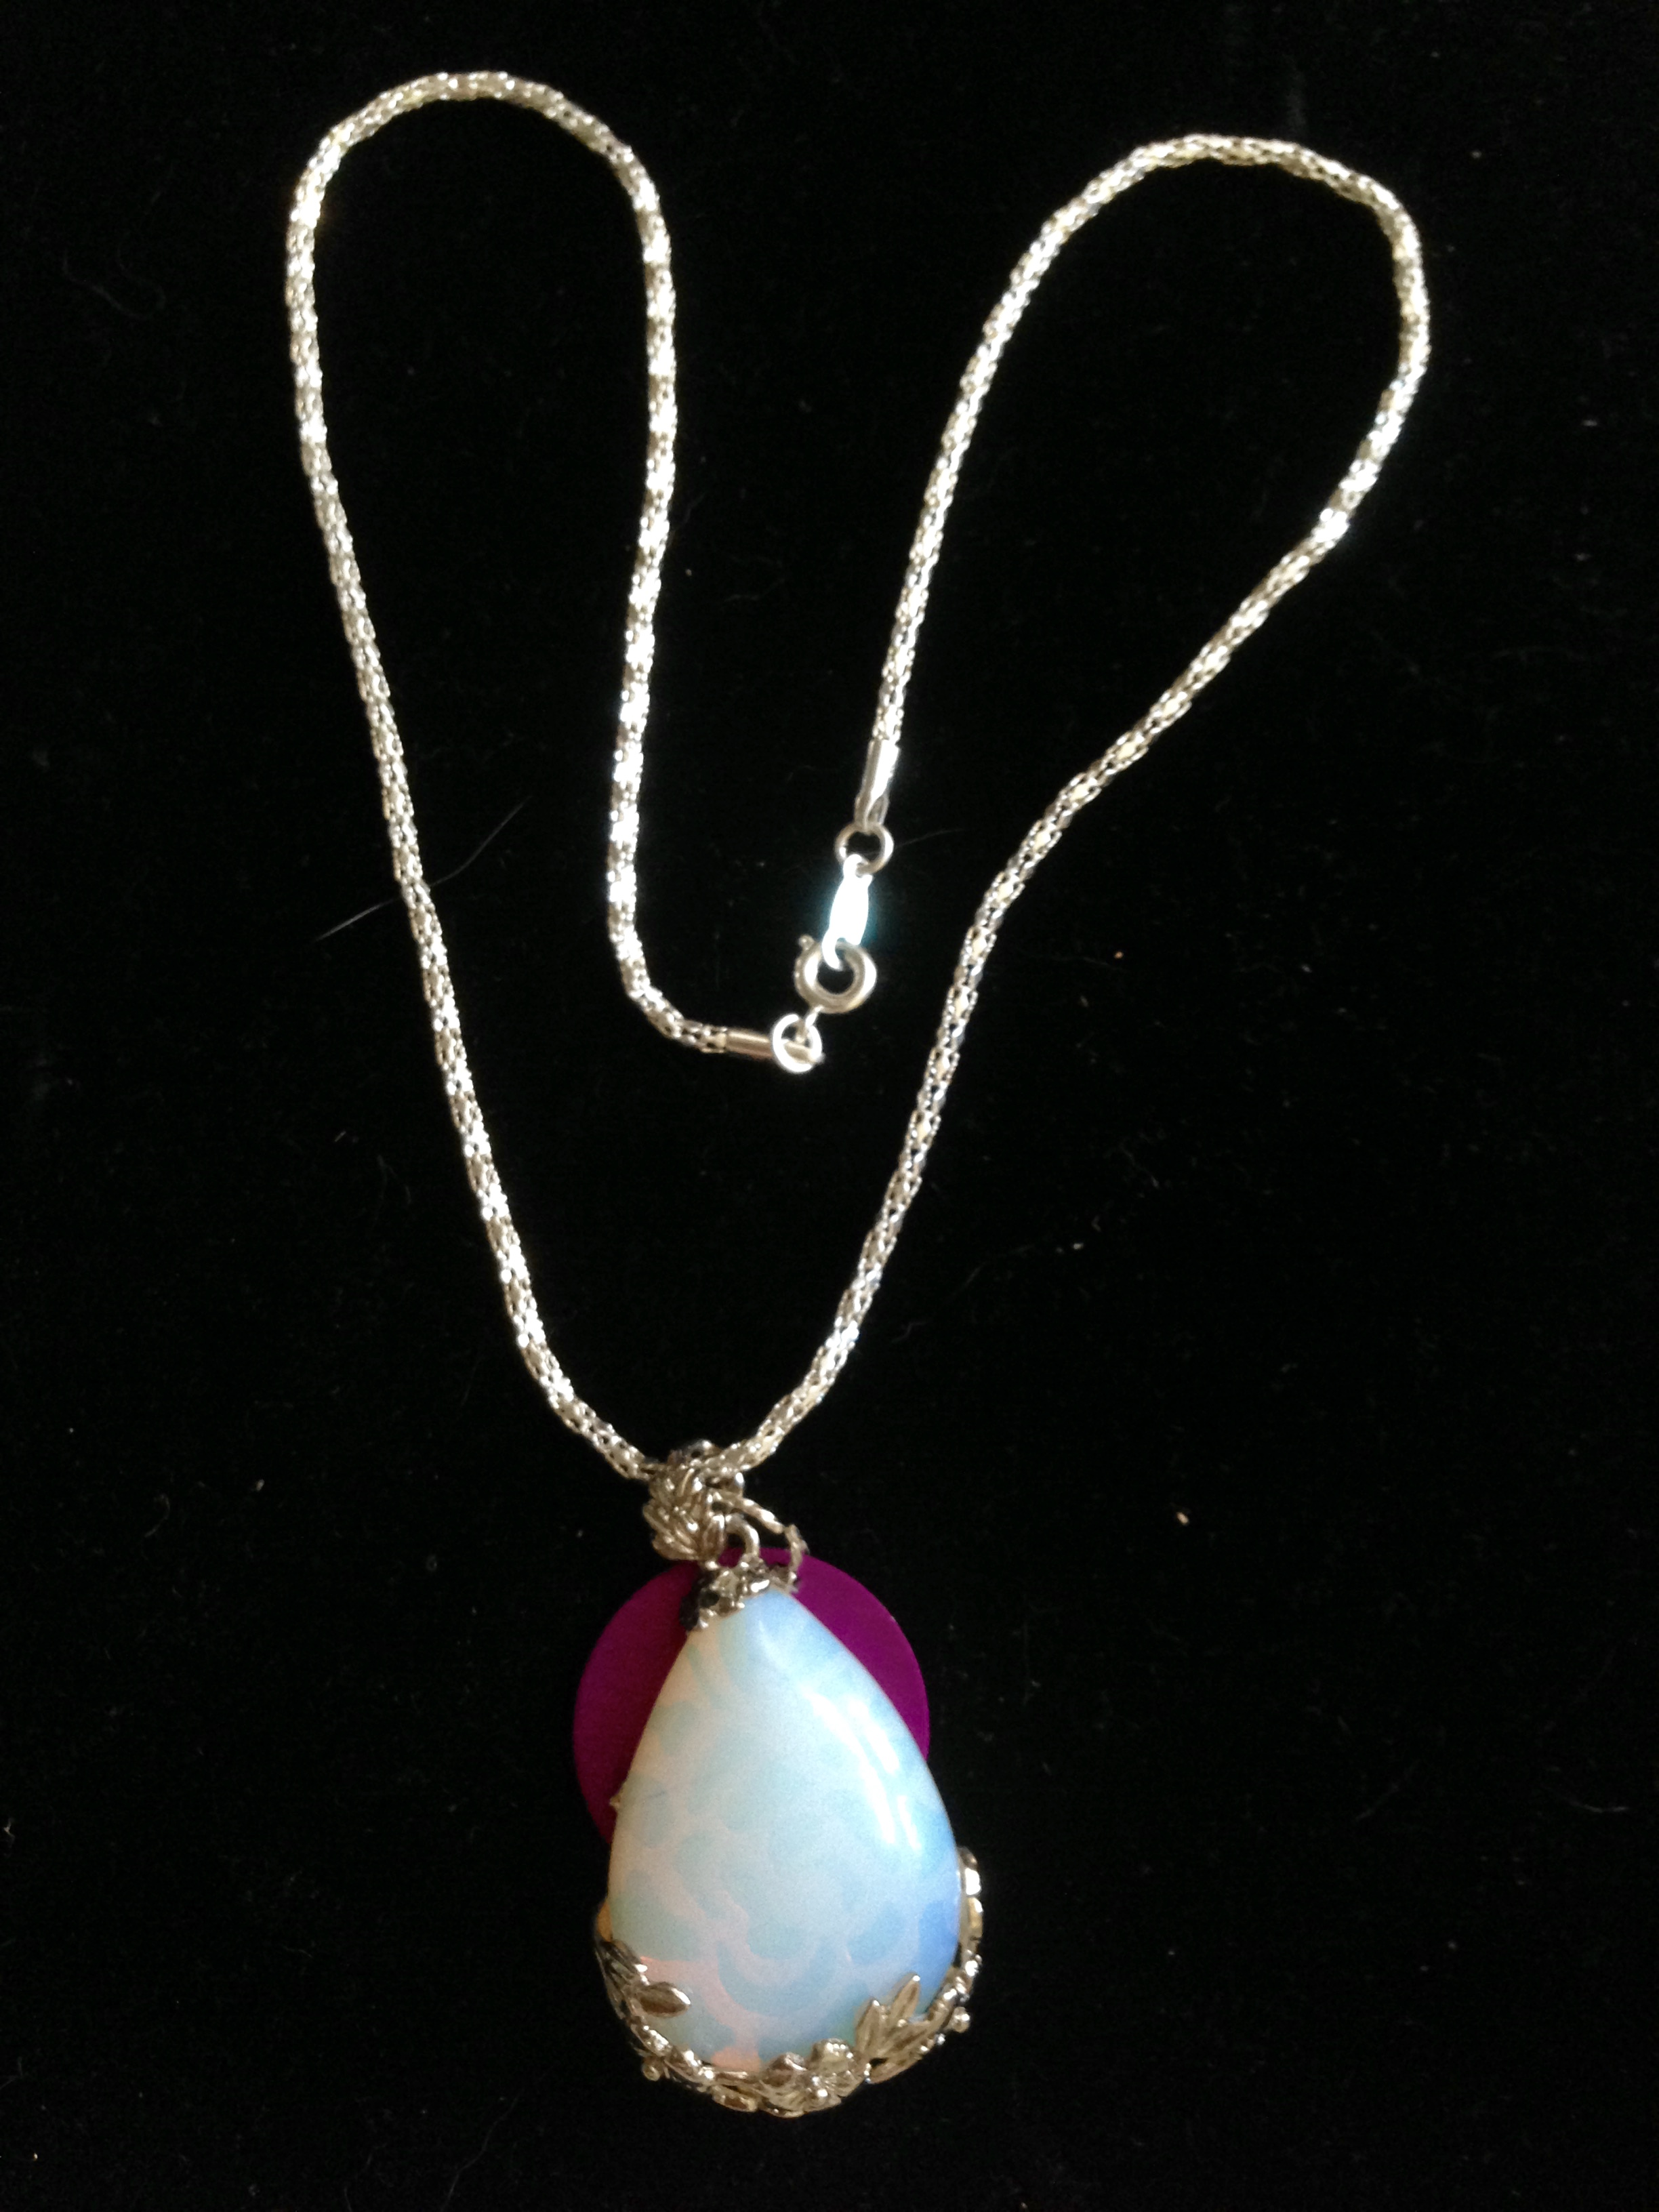 Large Opalite Tear Drop with Disk Necklace